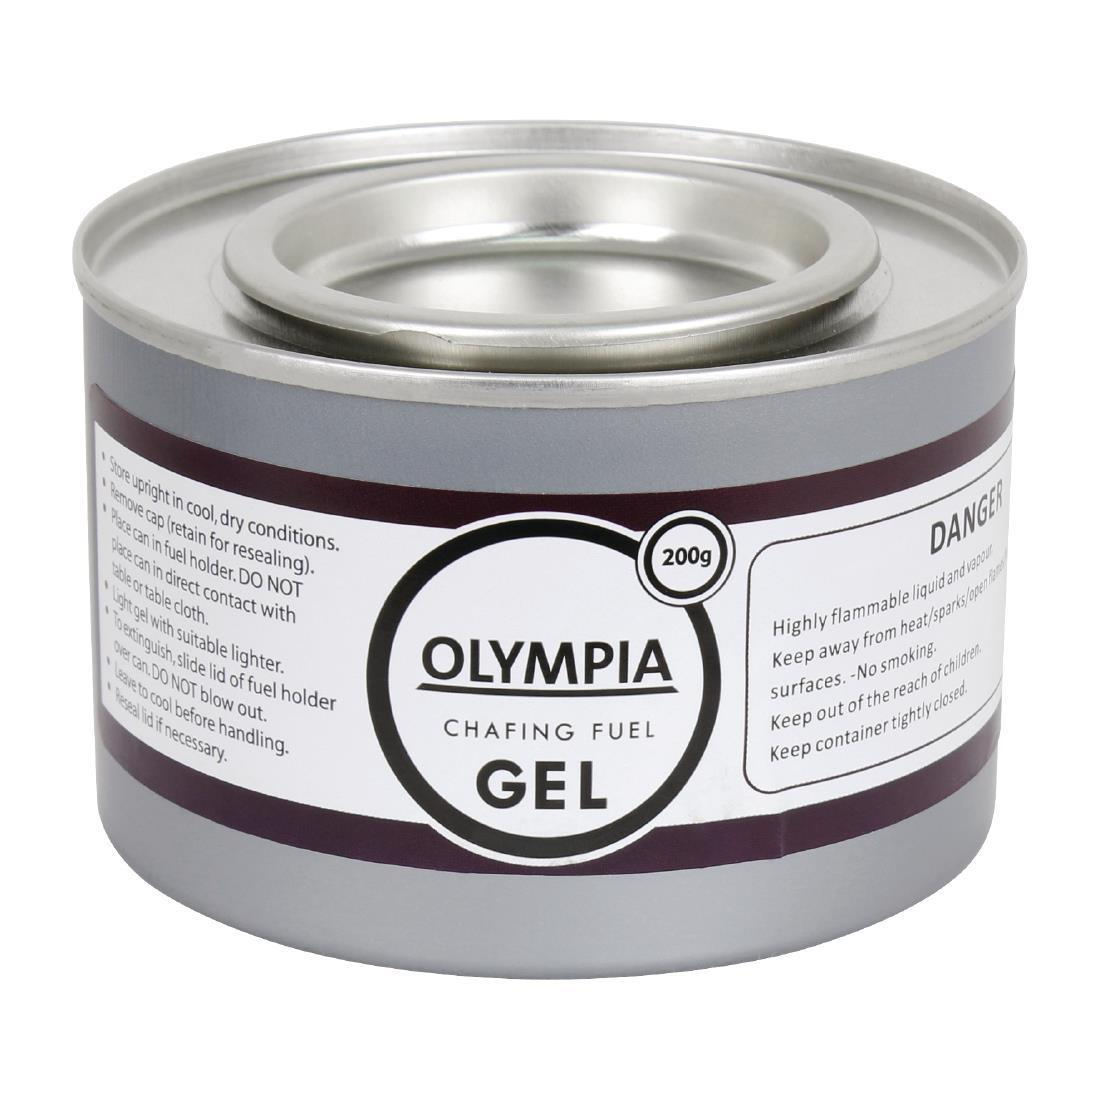 Olympia Gel Chafing Fuel 2 Hour x 12